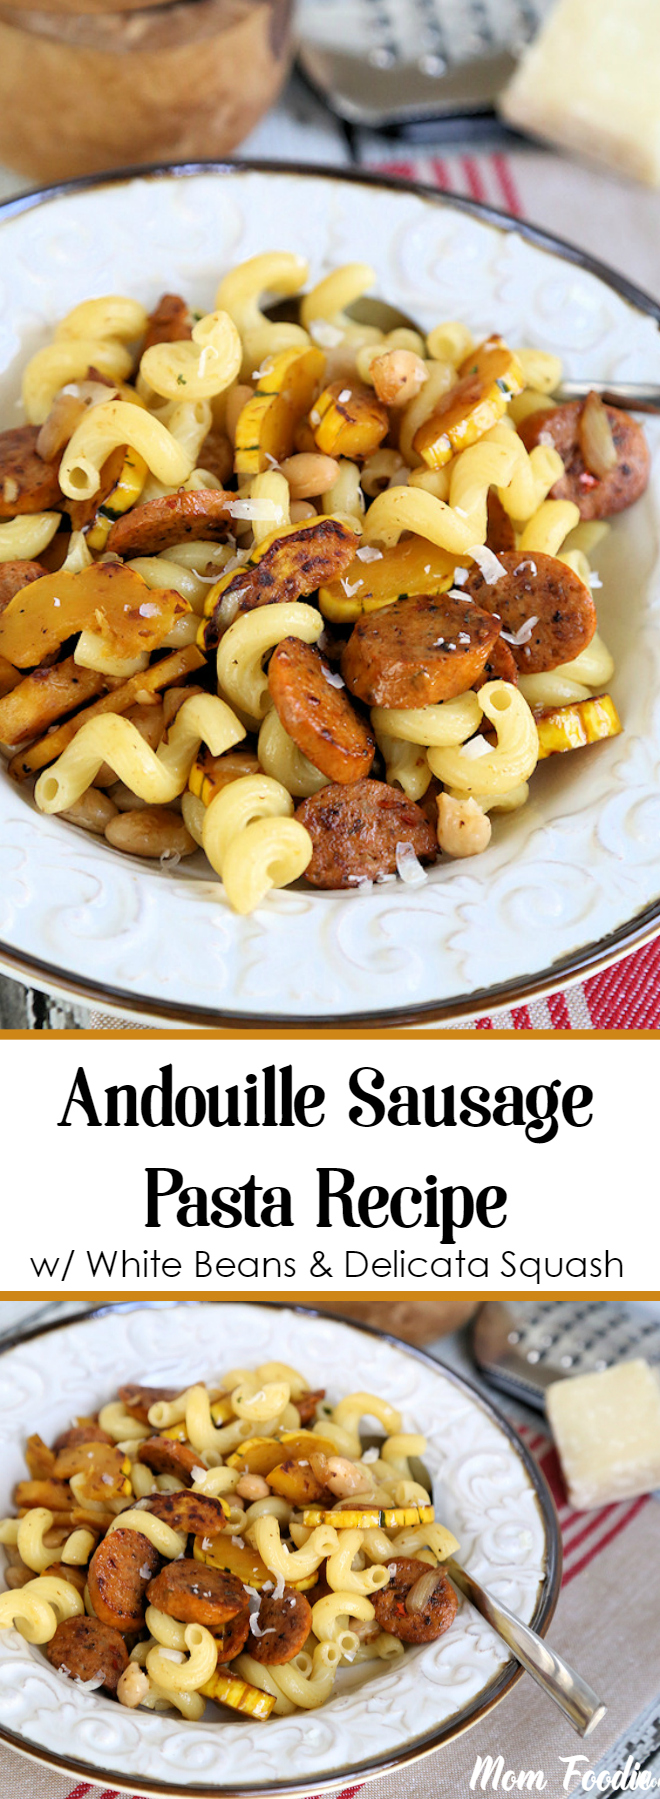 Andouille Sausage Pasta Recipe with White Beans & Delicata Squash